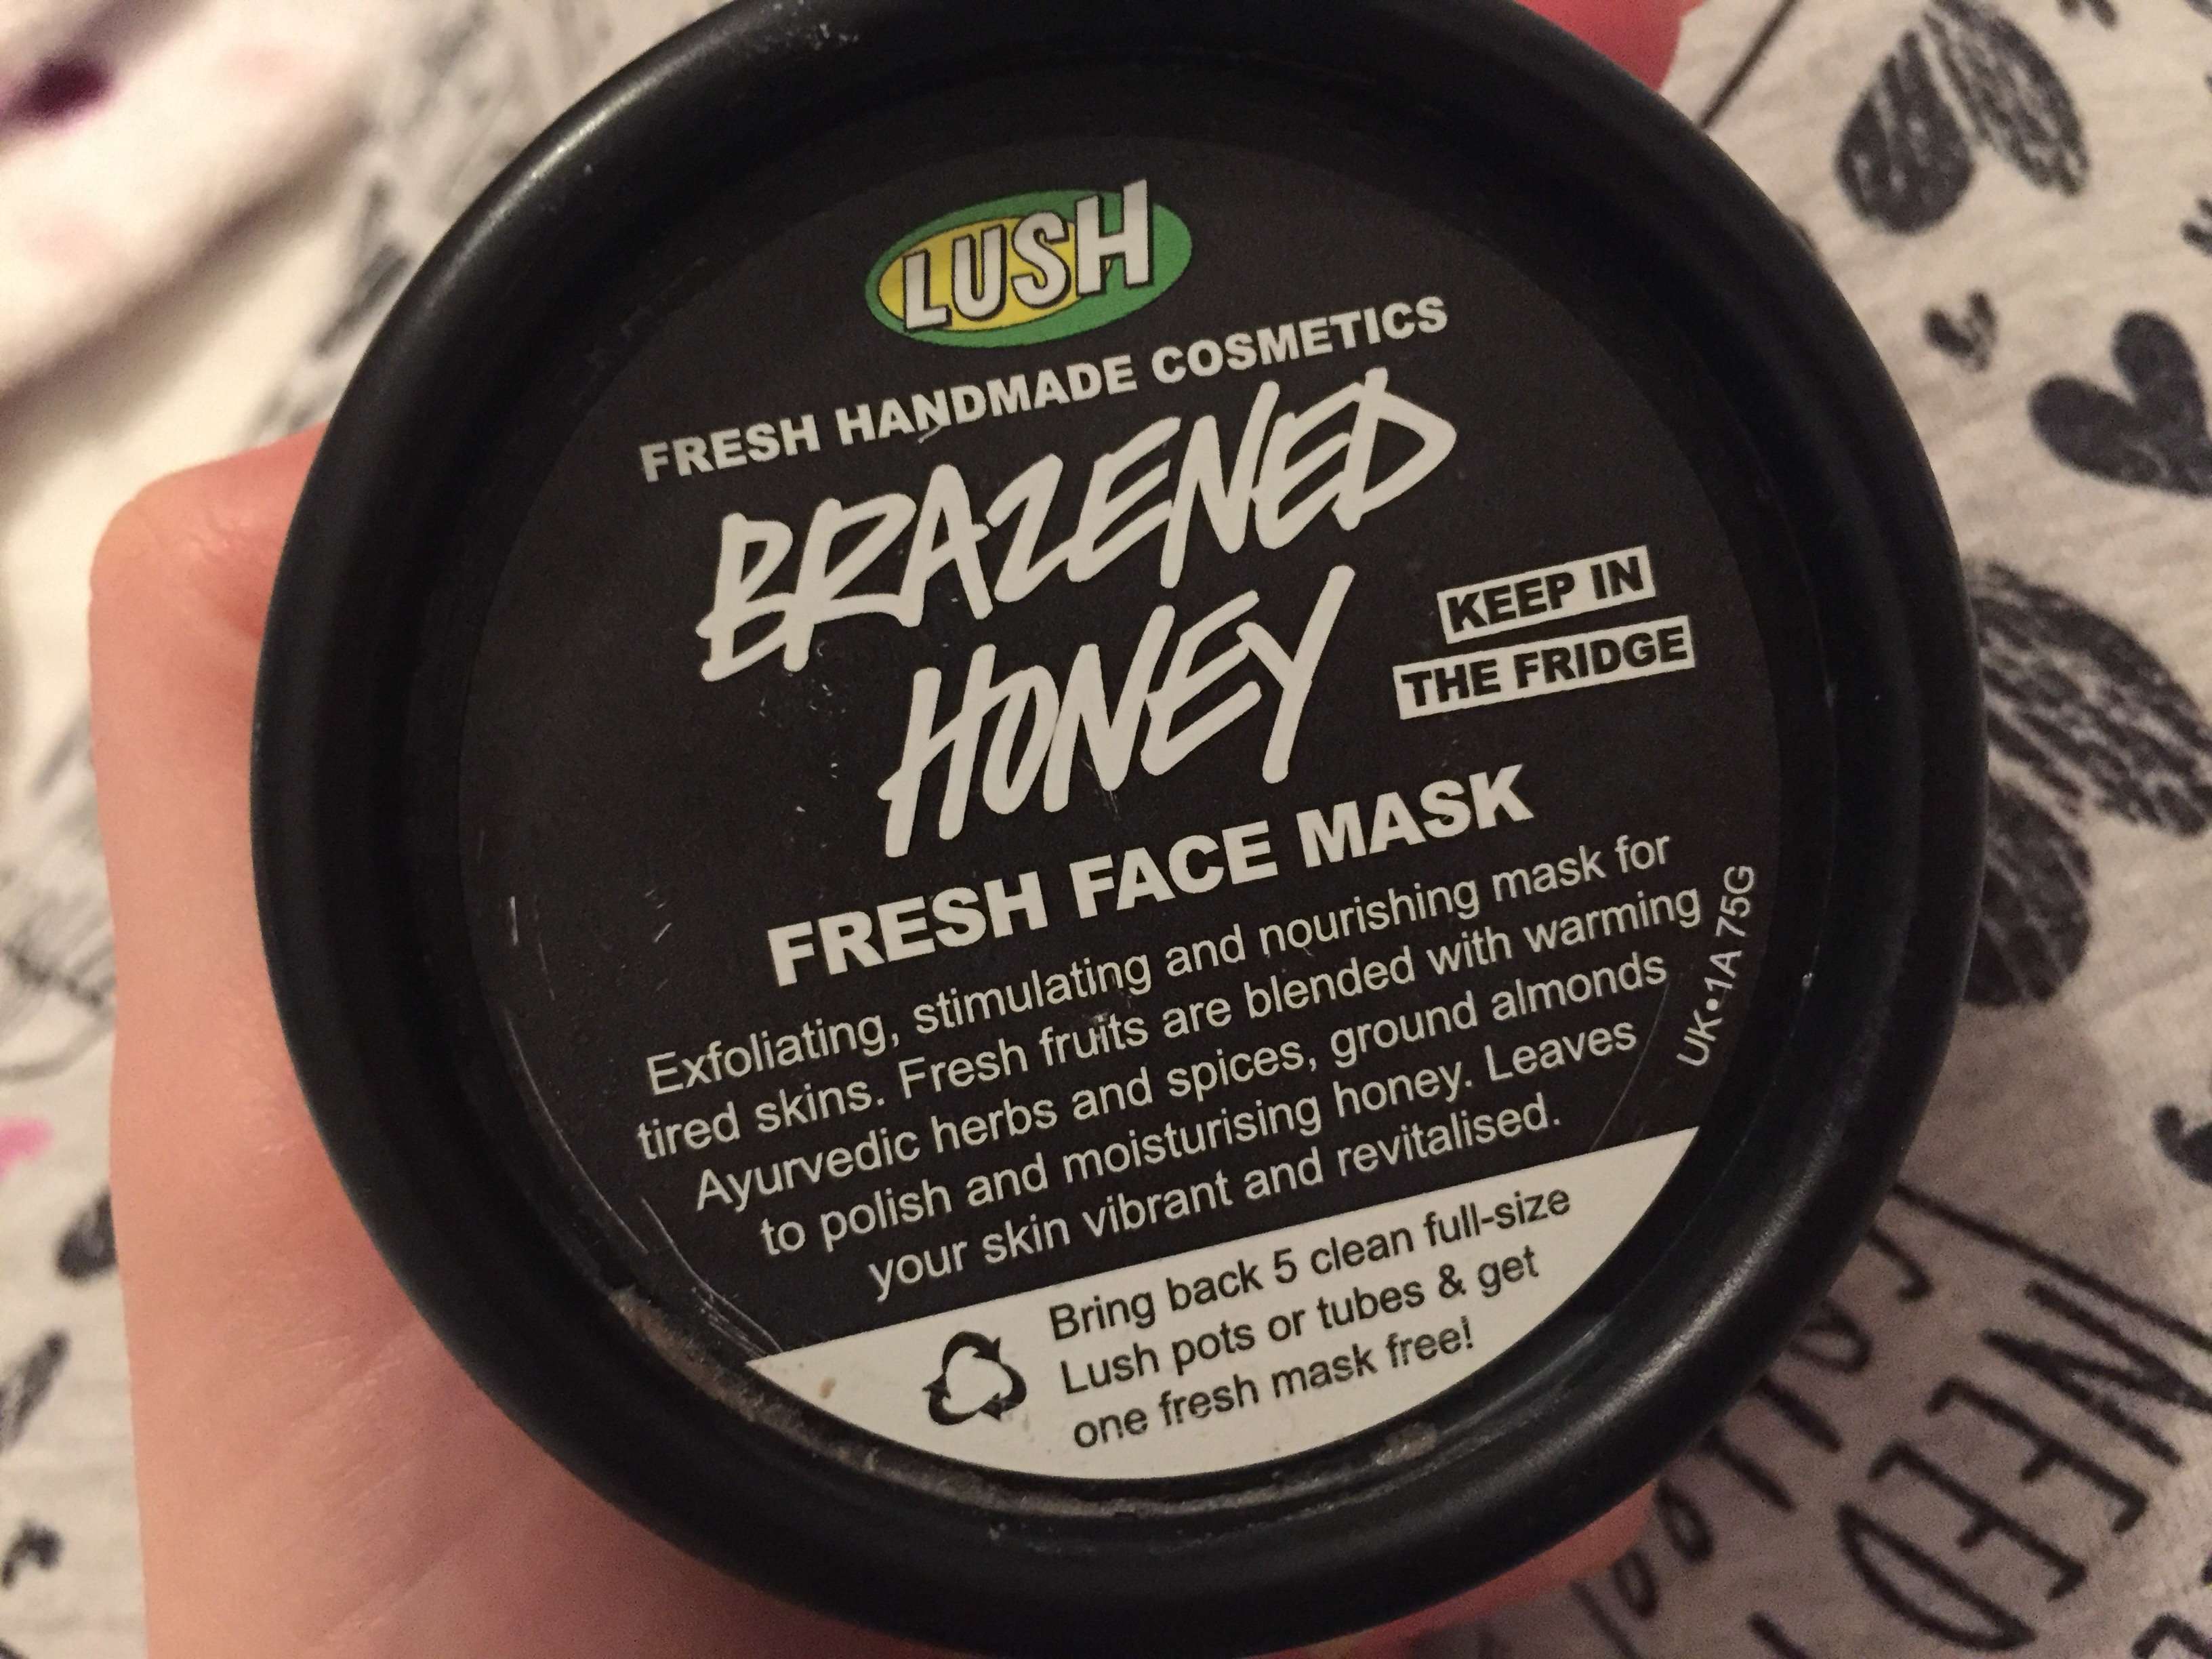 Lush Brazened Honey